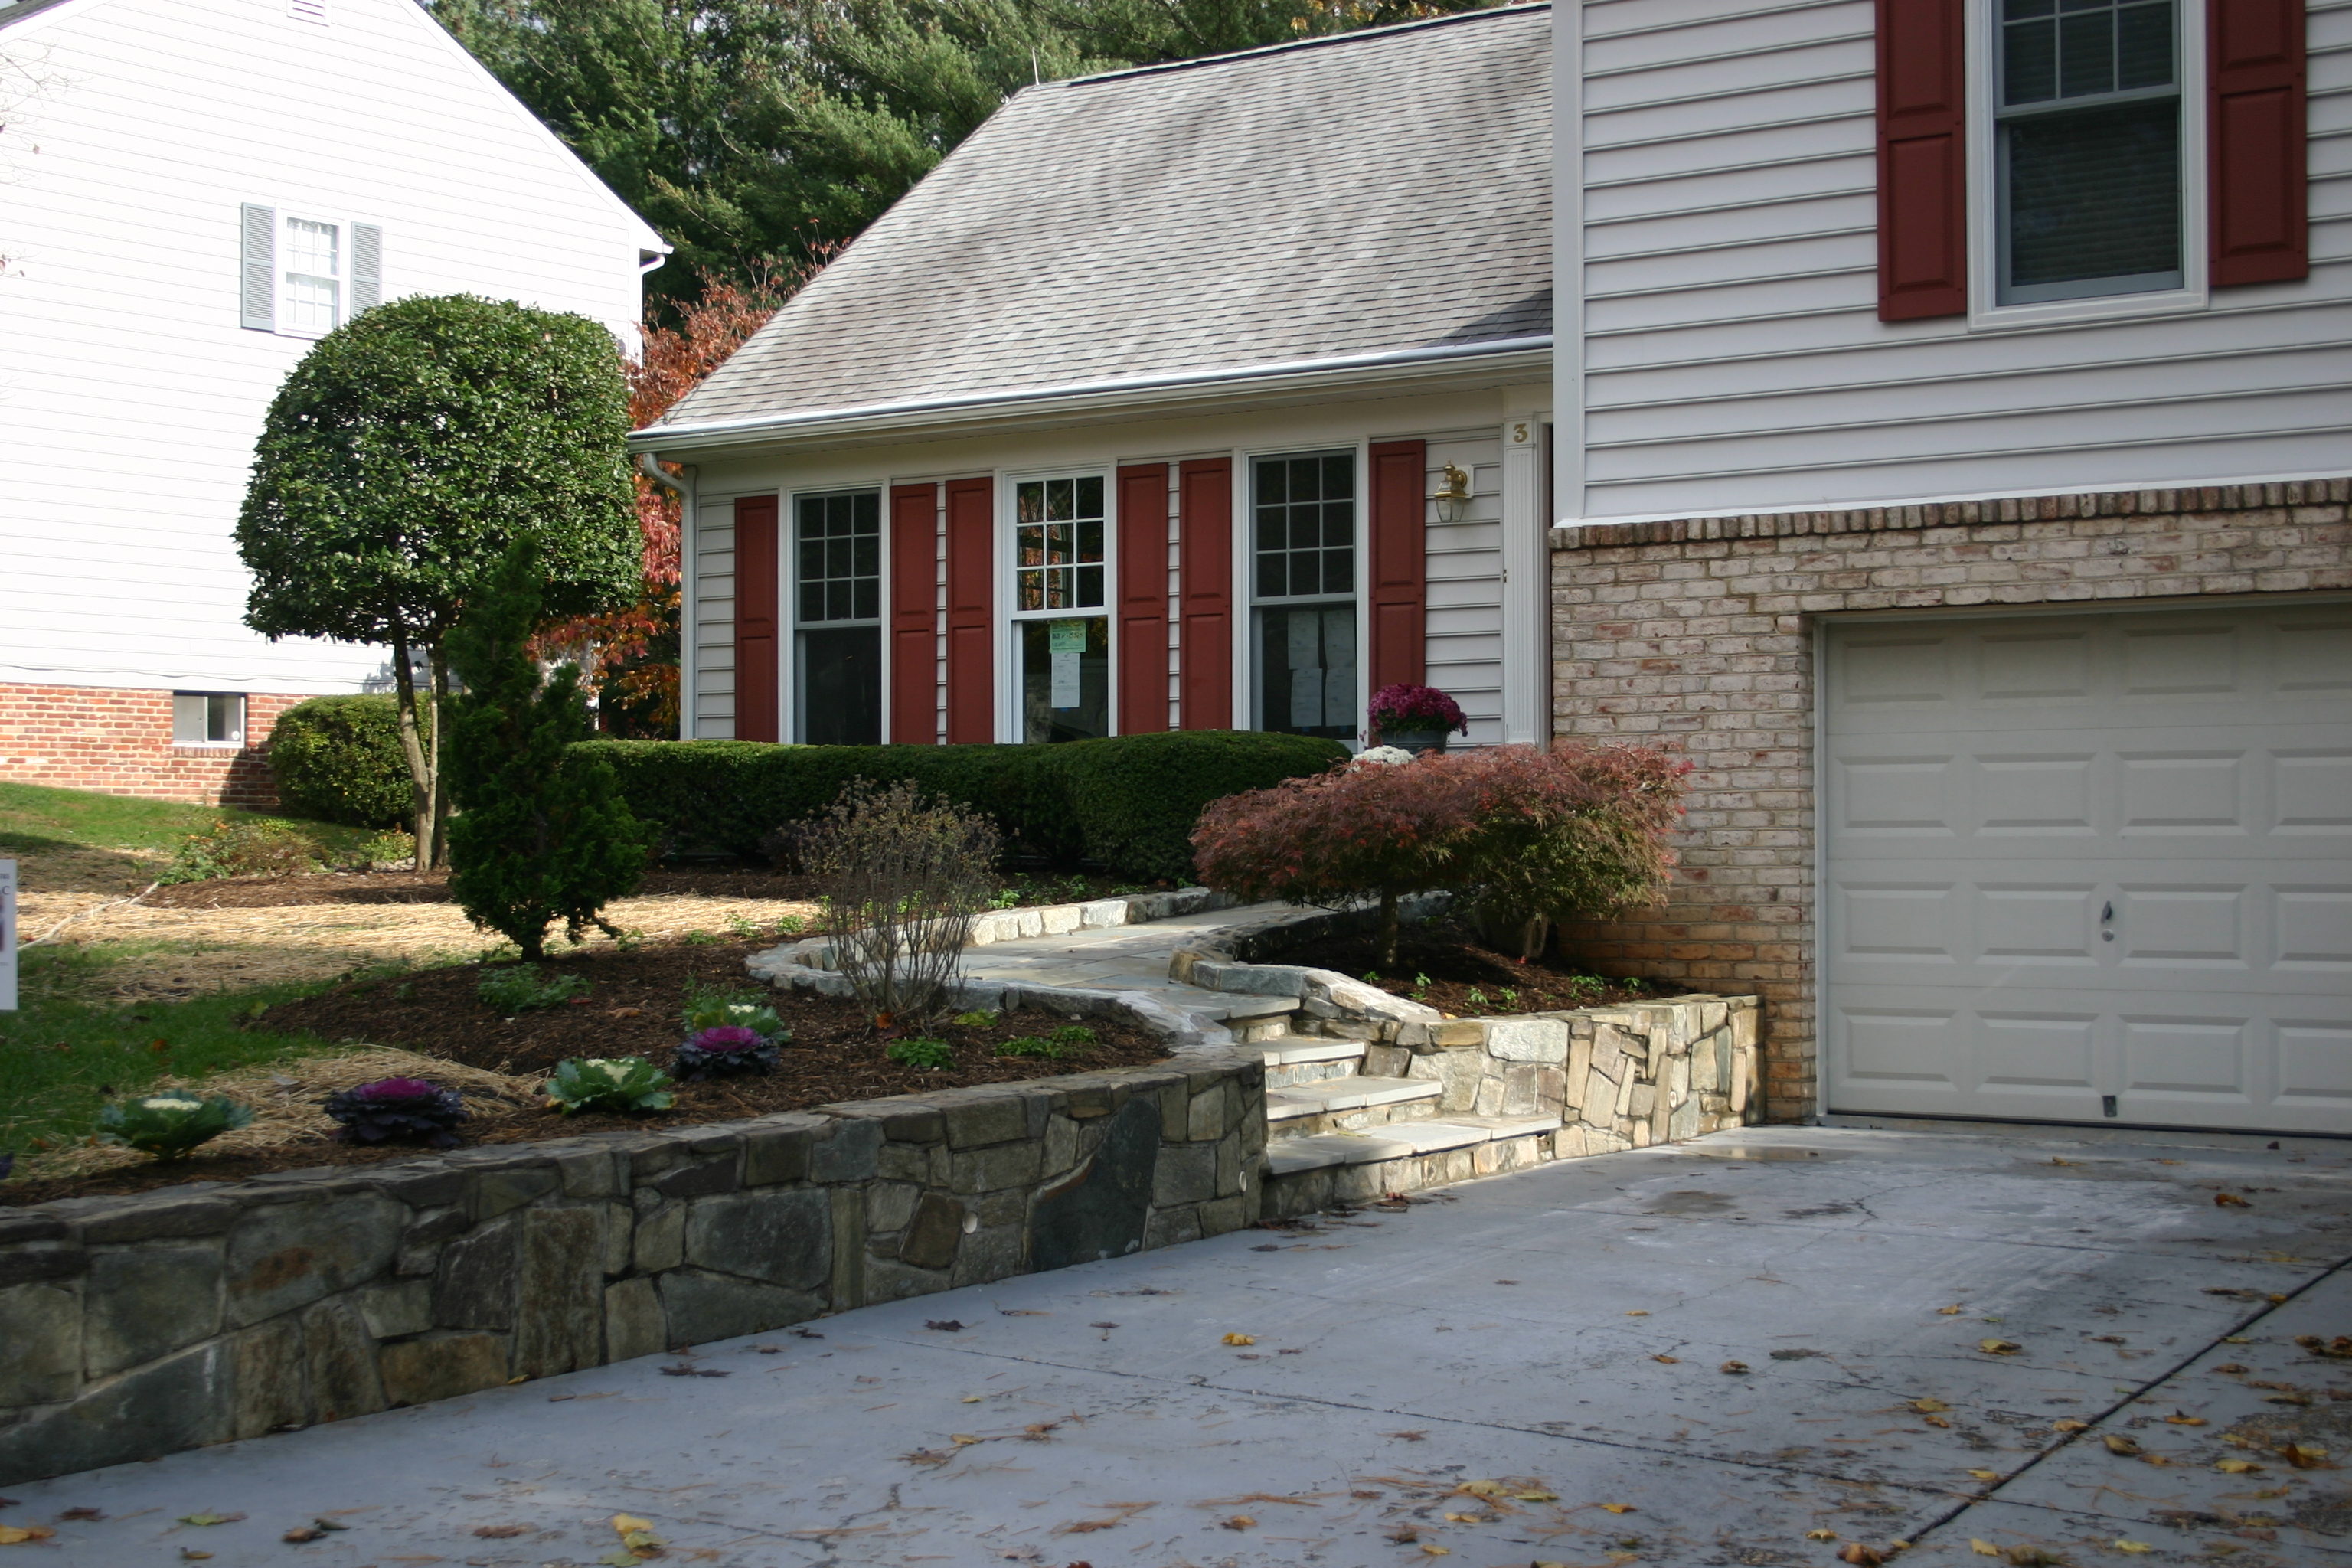 Retaining wall and stone stairway Rockville, MD, USA